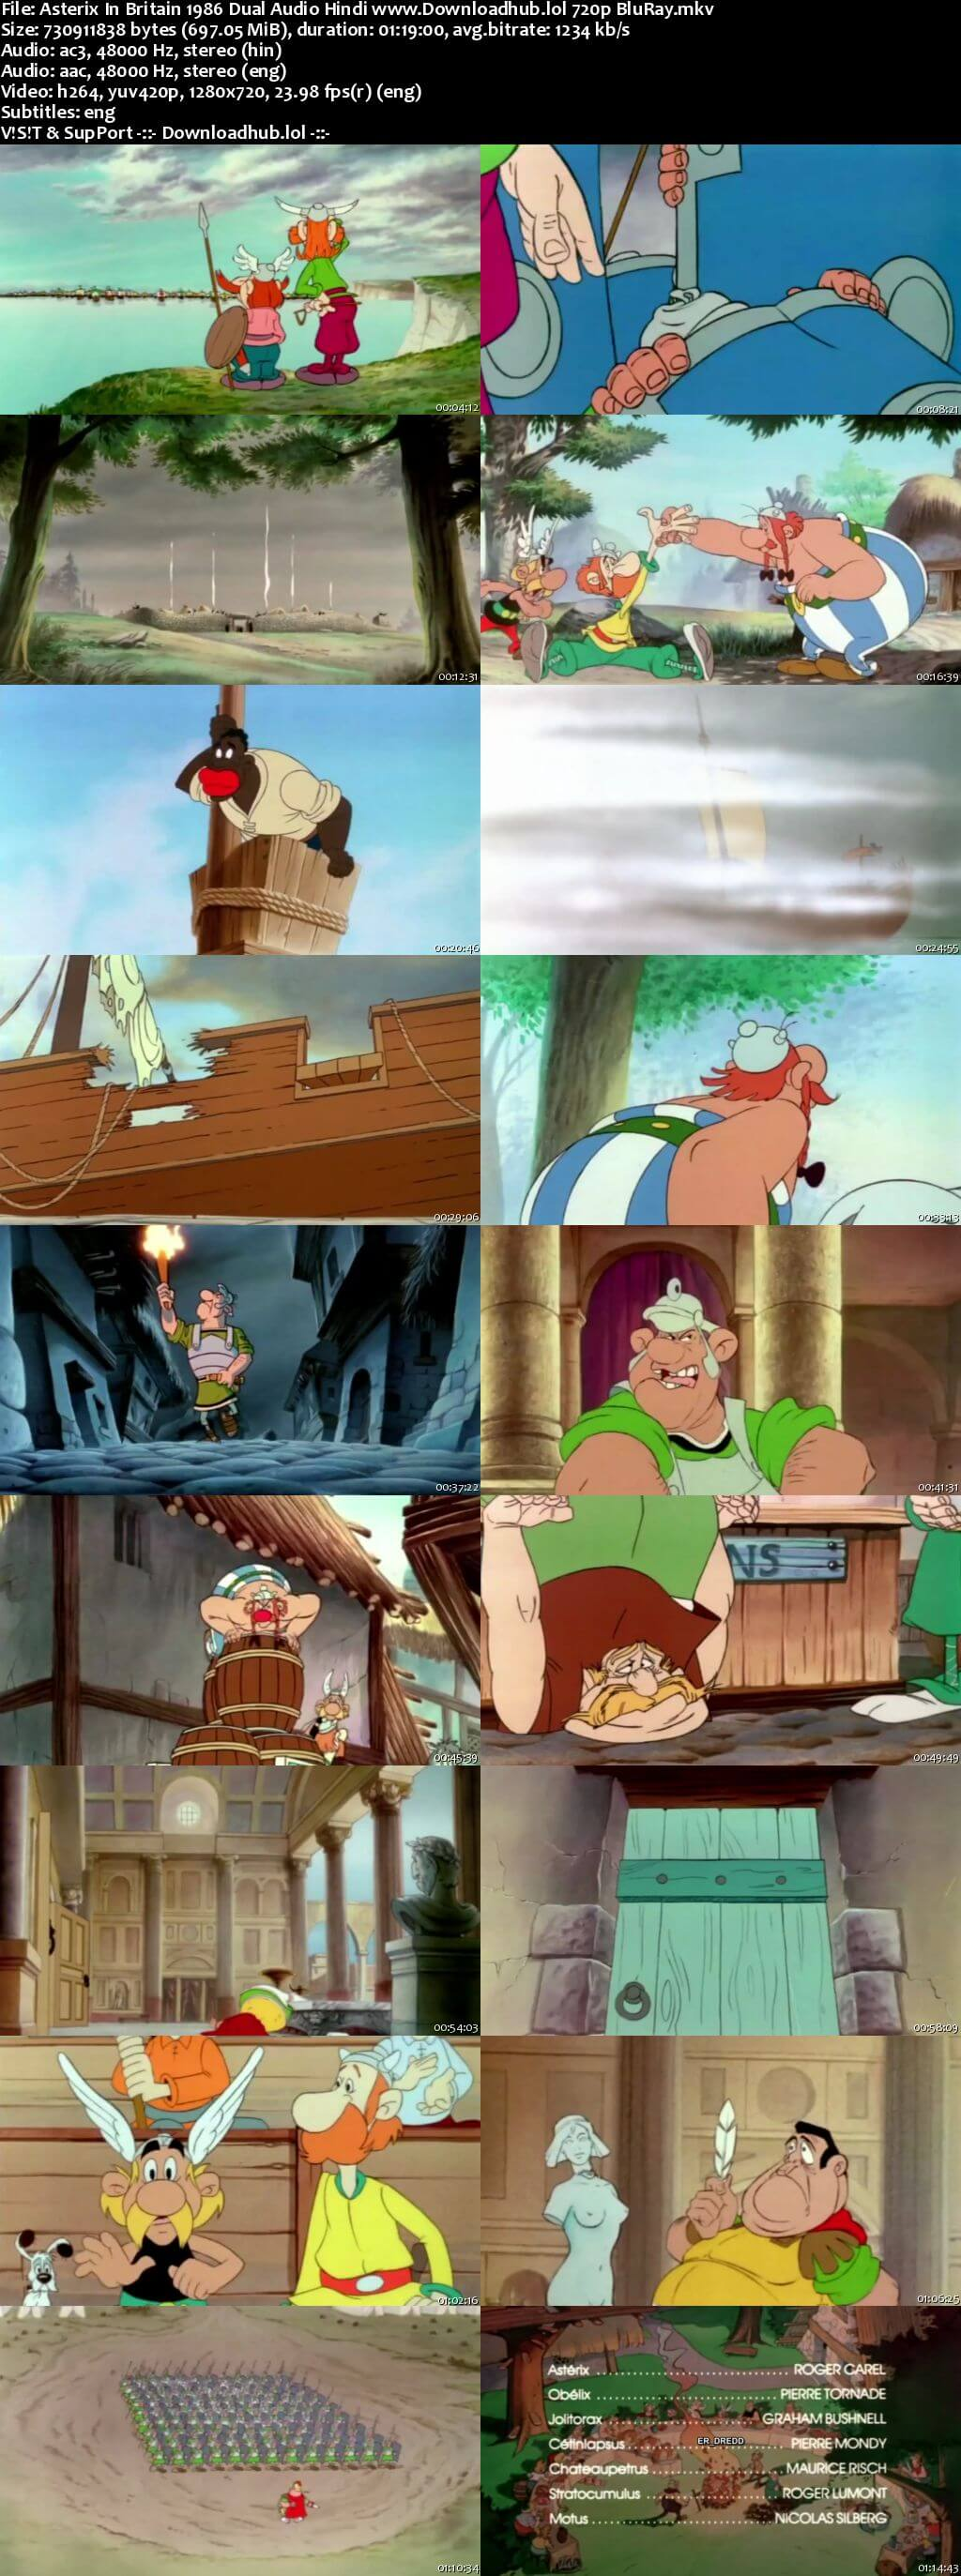 Asterix in Britain 1986 Hindi Dual Audio 720p BluRay ESubs